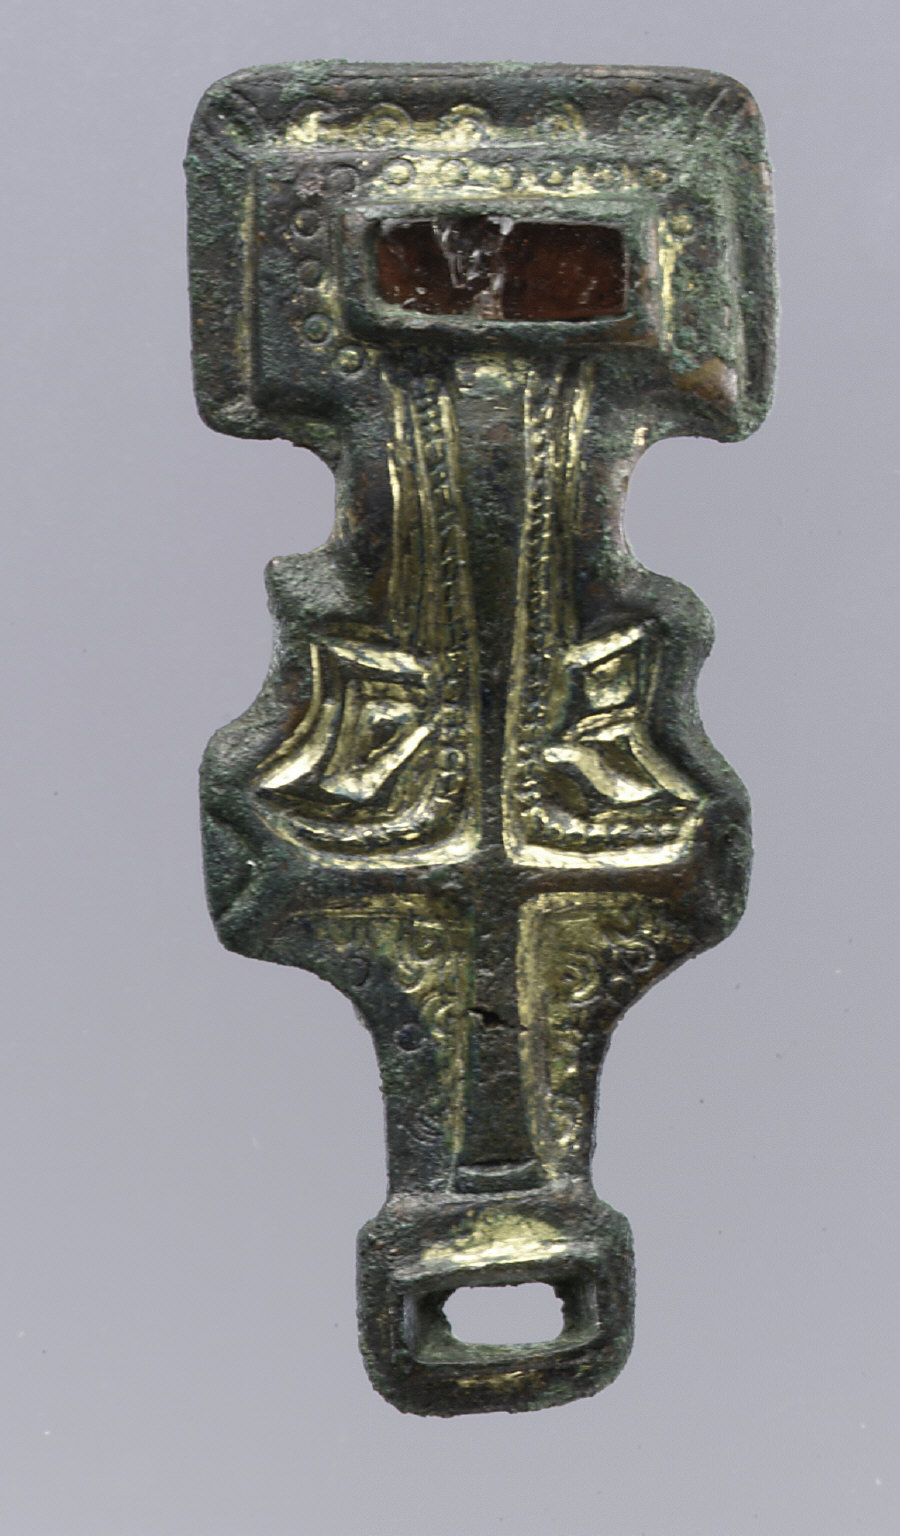 Pair of Miniature Square-Headed Brooches